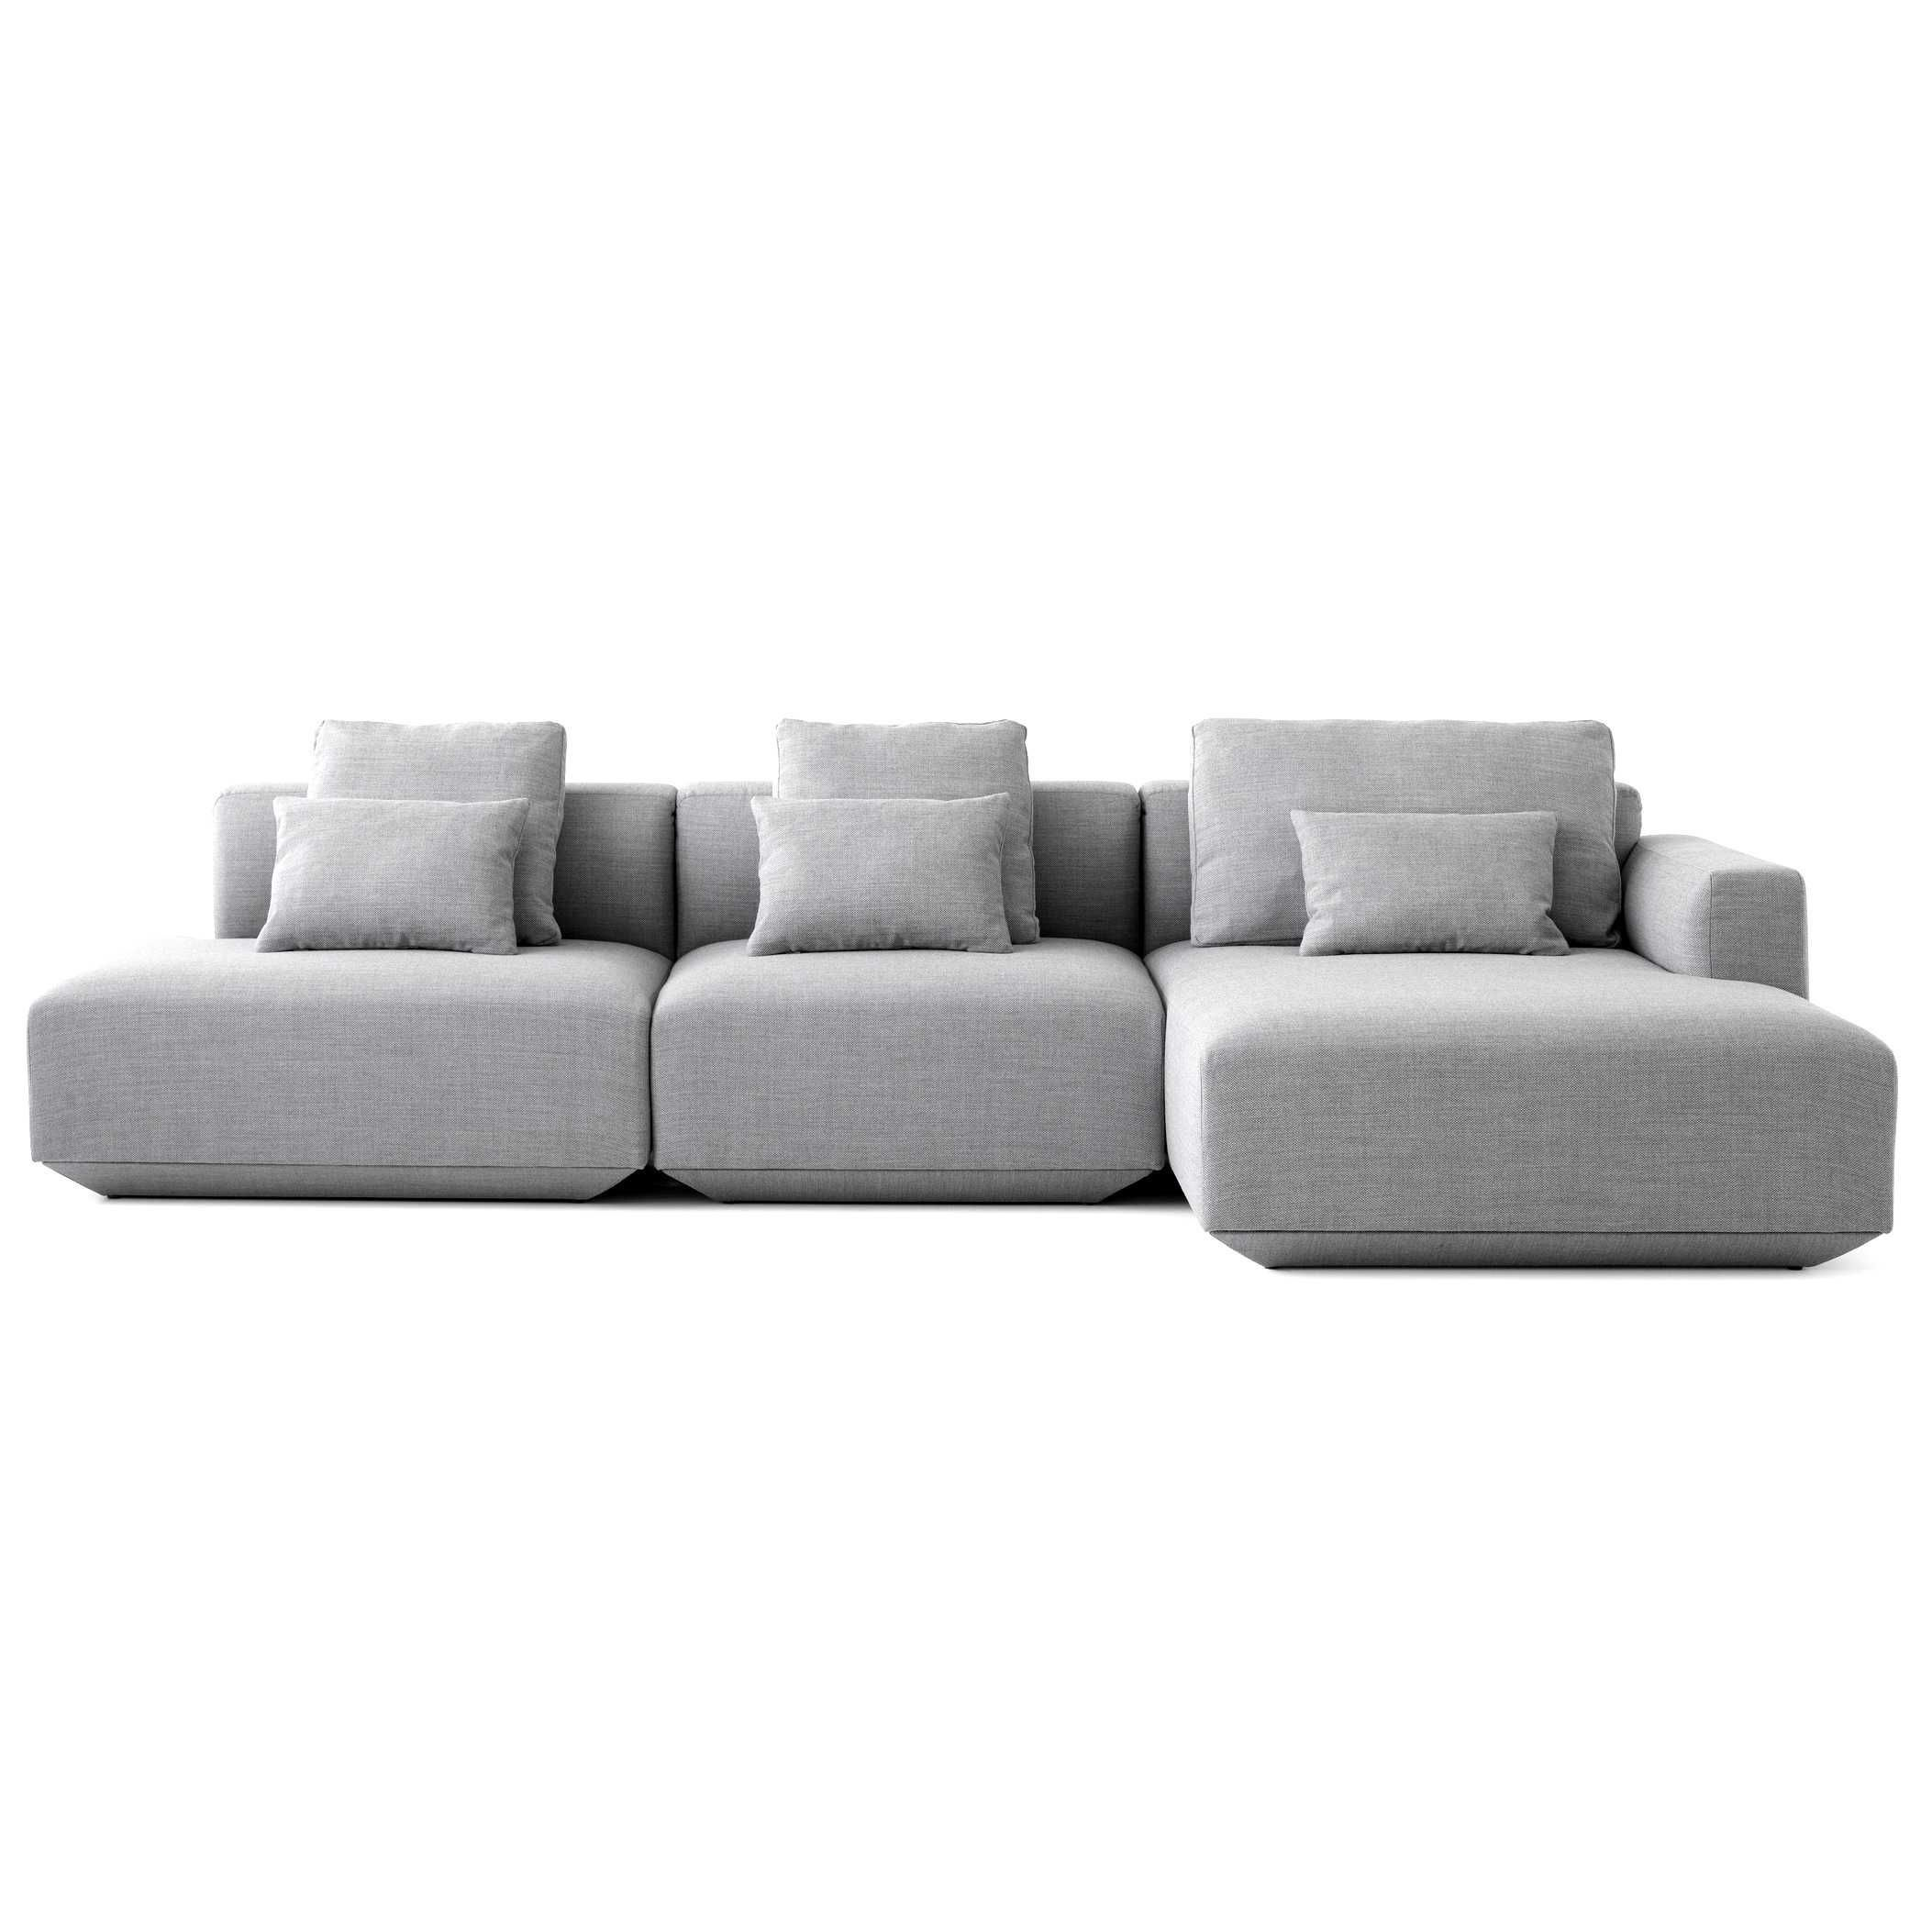 Design Bank Met Chaise Longue.Tradition Develius Bank 3 Zits Met Chaise Longue Rechts En Open